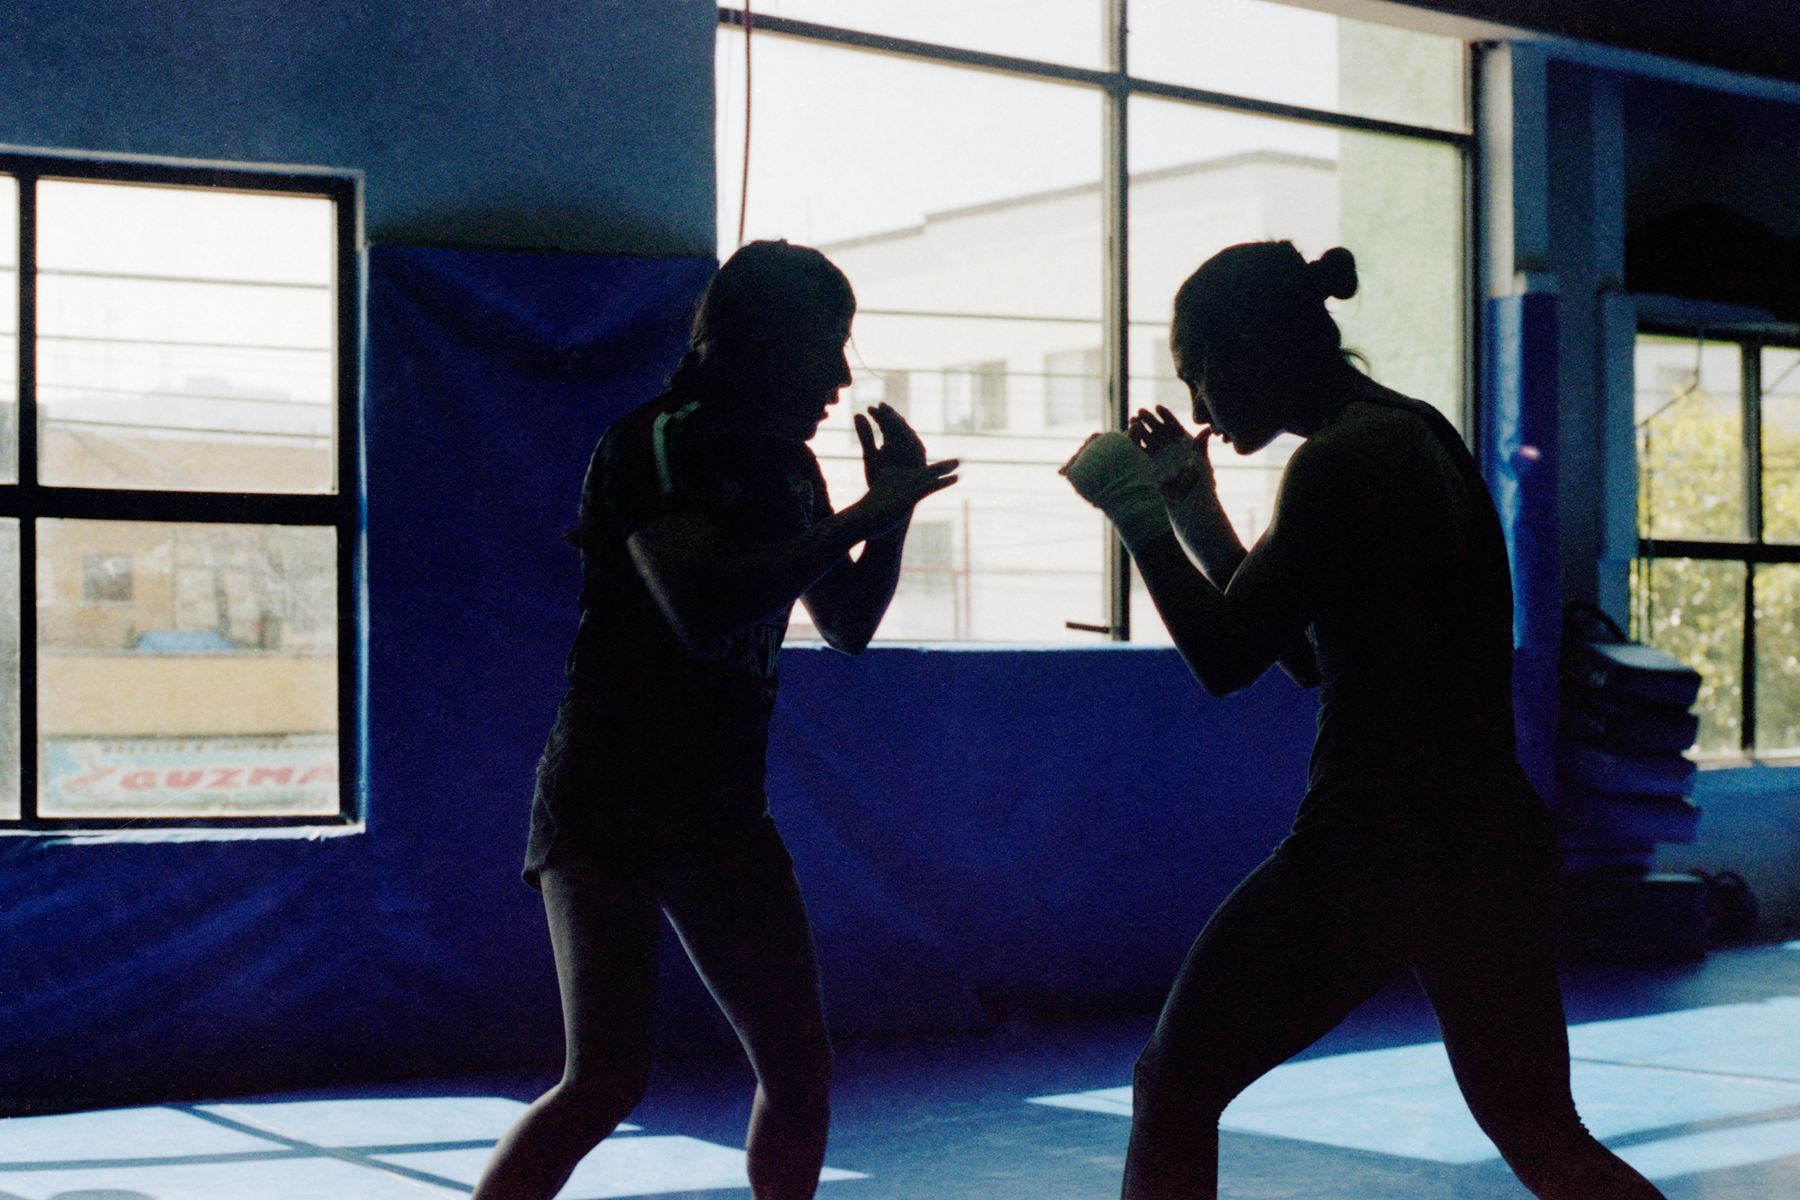 February 27, 2019 - Tijuana, BC, Mexico: Kenia Enriquez, left, practices MMA techniques with jiujitsu champion Yasmin Gutierrez Jauregui, right, at Entram Gym. (Mallika Vora)